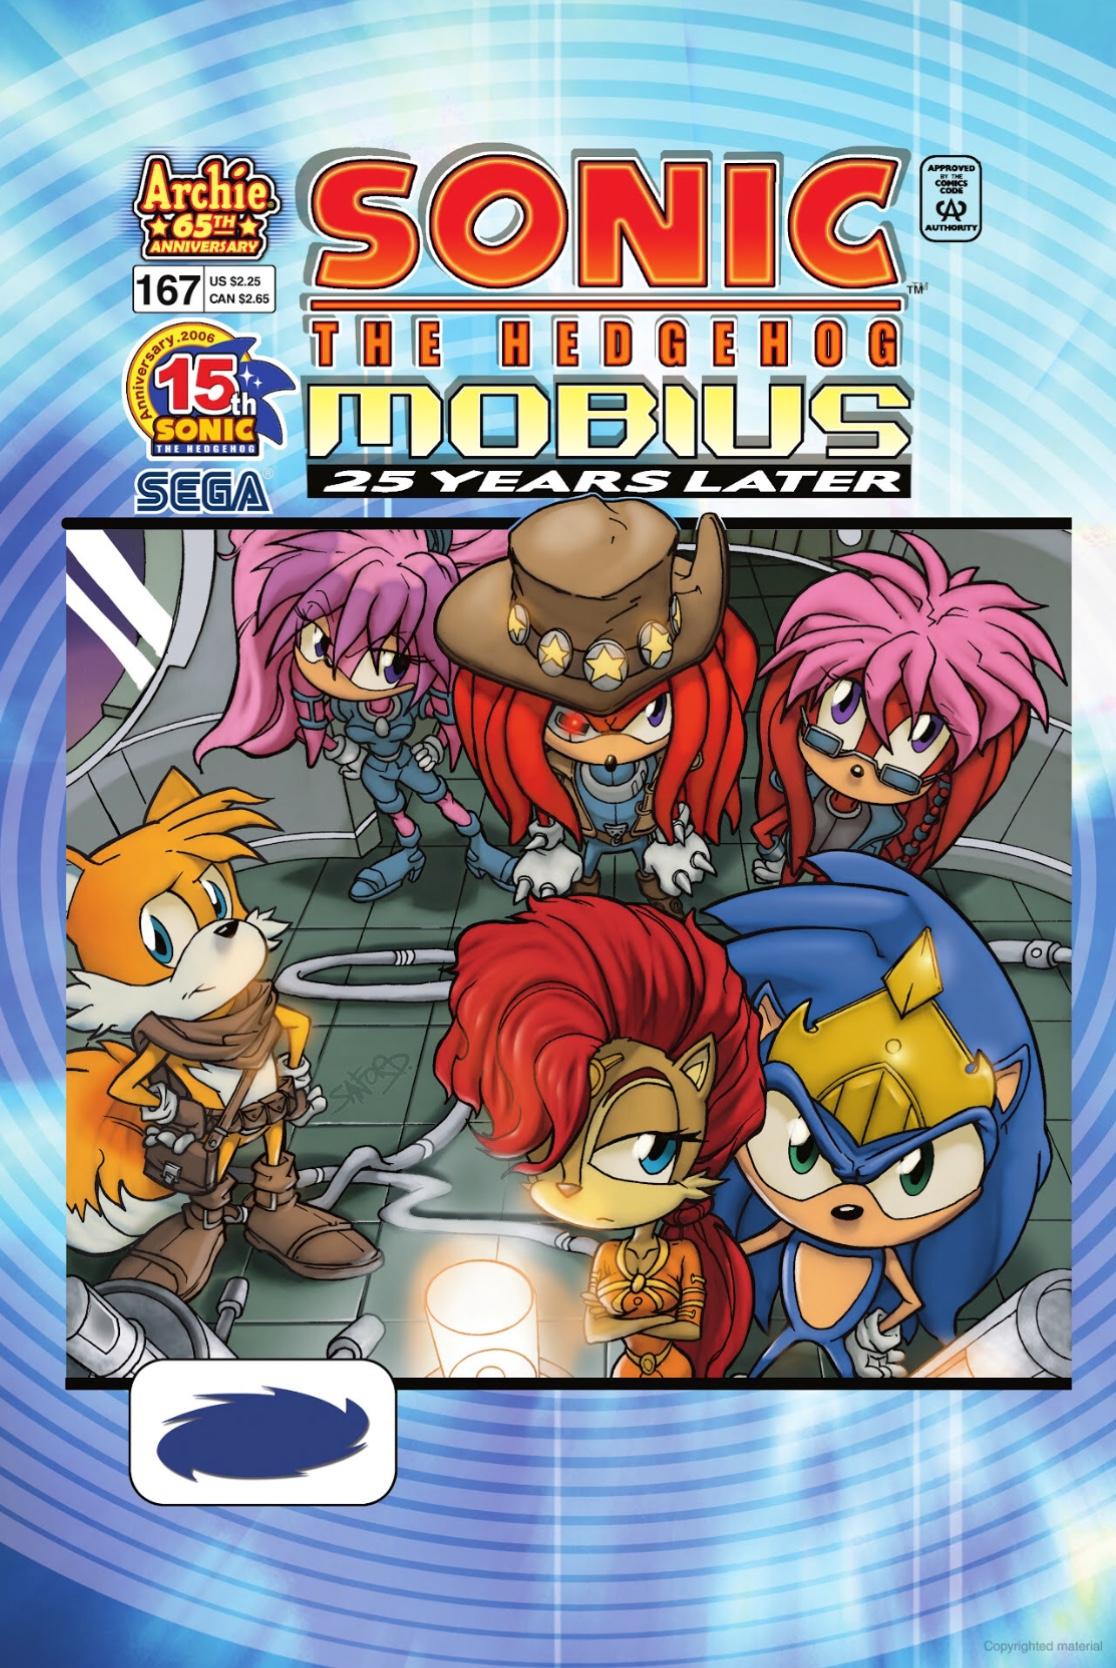 Archie Sonic the Hedgehog Issue 167